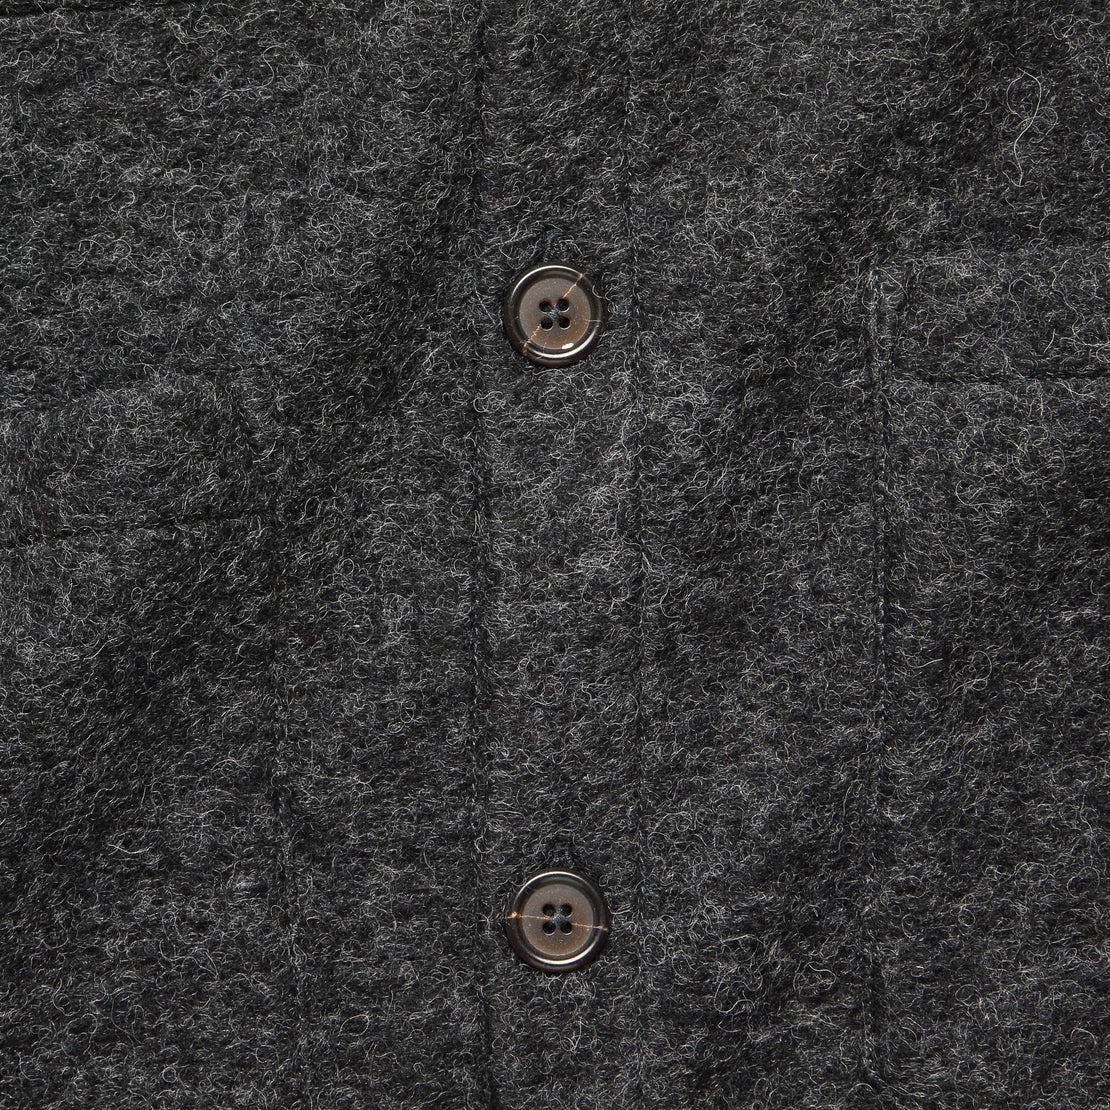 Wool Fleece Cardigan - Charcoal